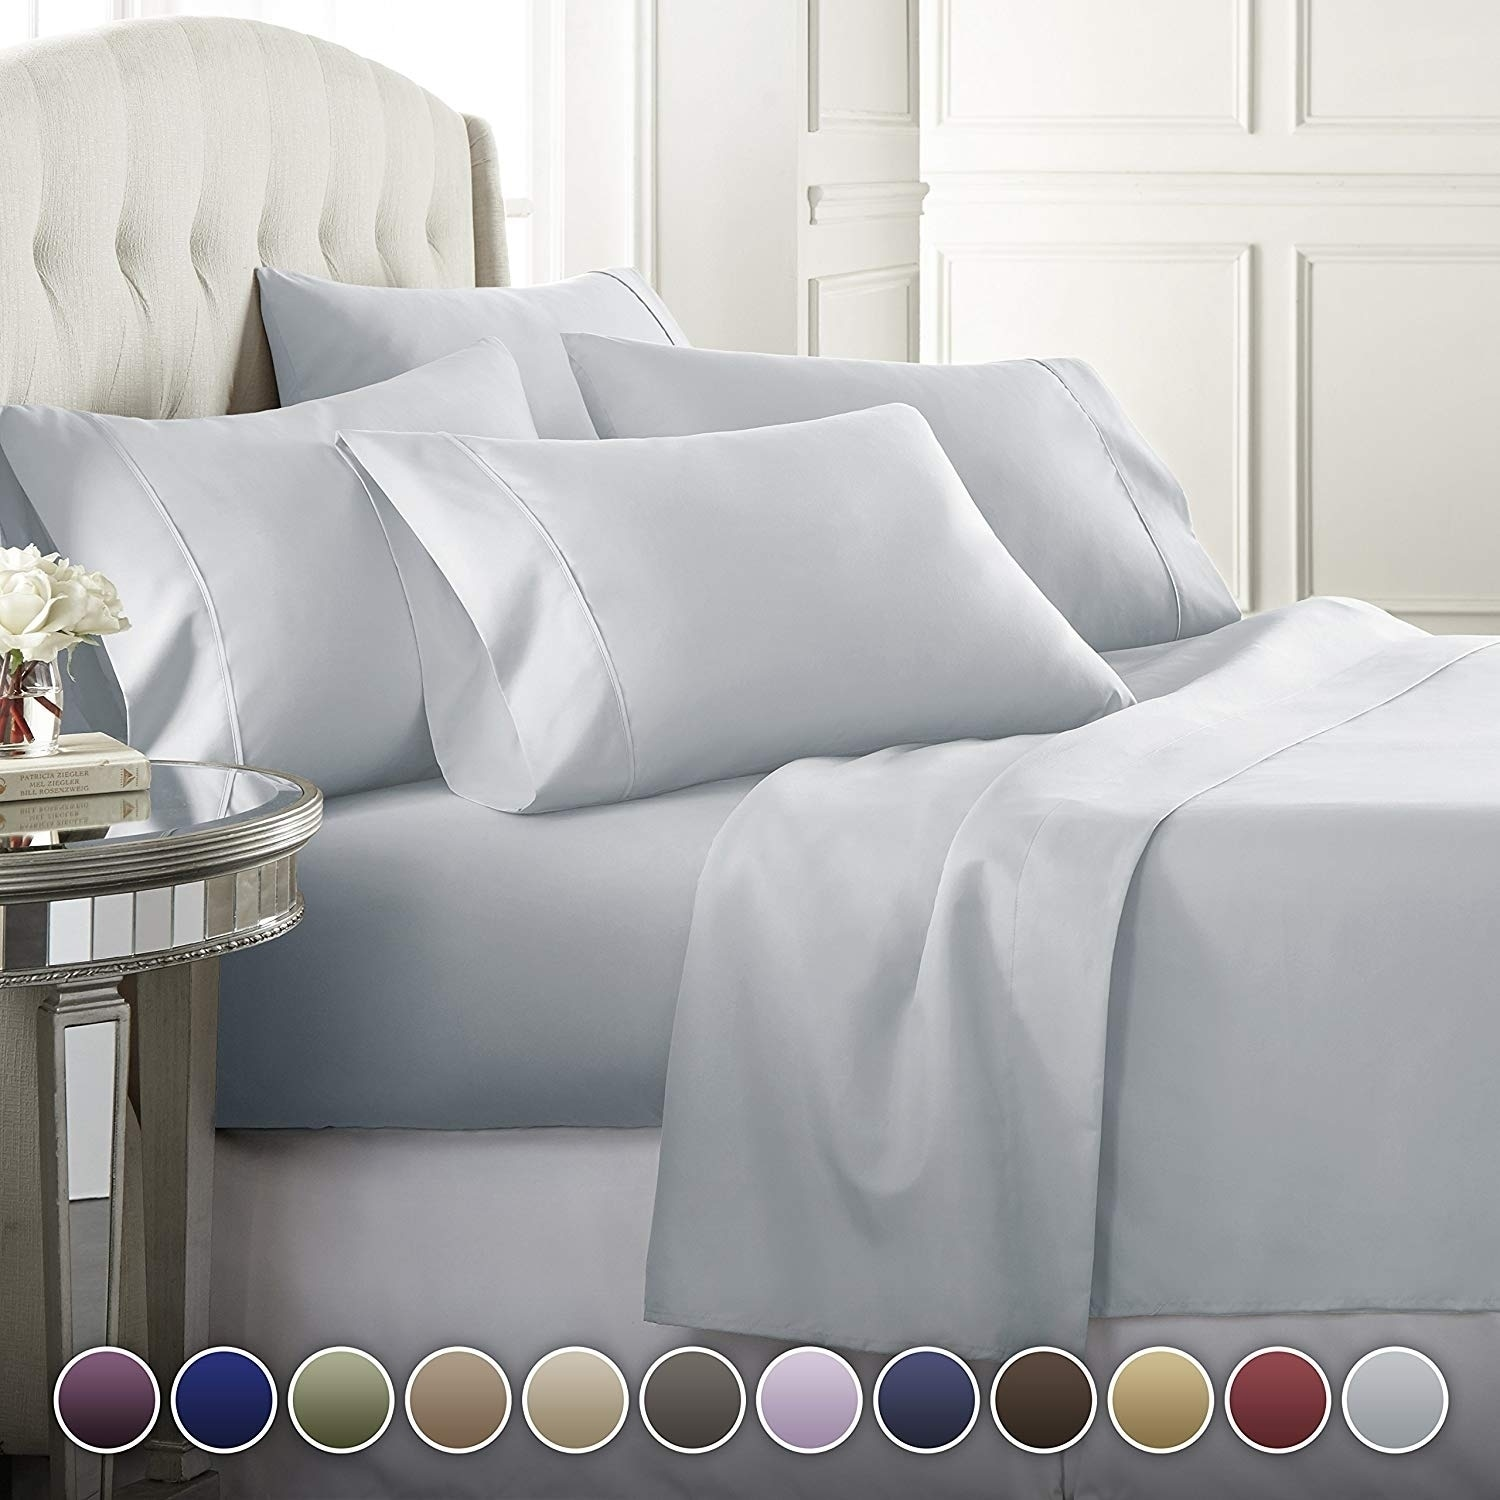 Hotel Luxury 4 Pcs Deep Pocket 1800 Count sheets Hotel Edition Bed Sheet Set 8H